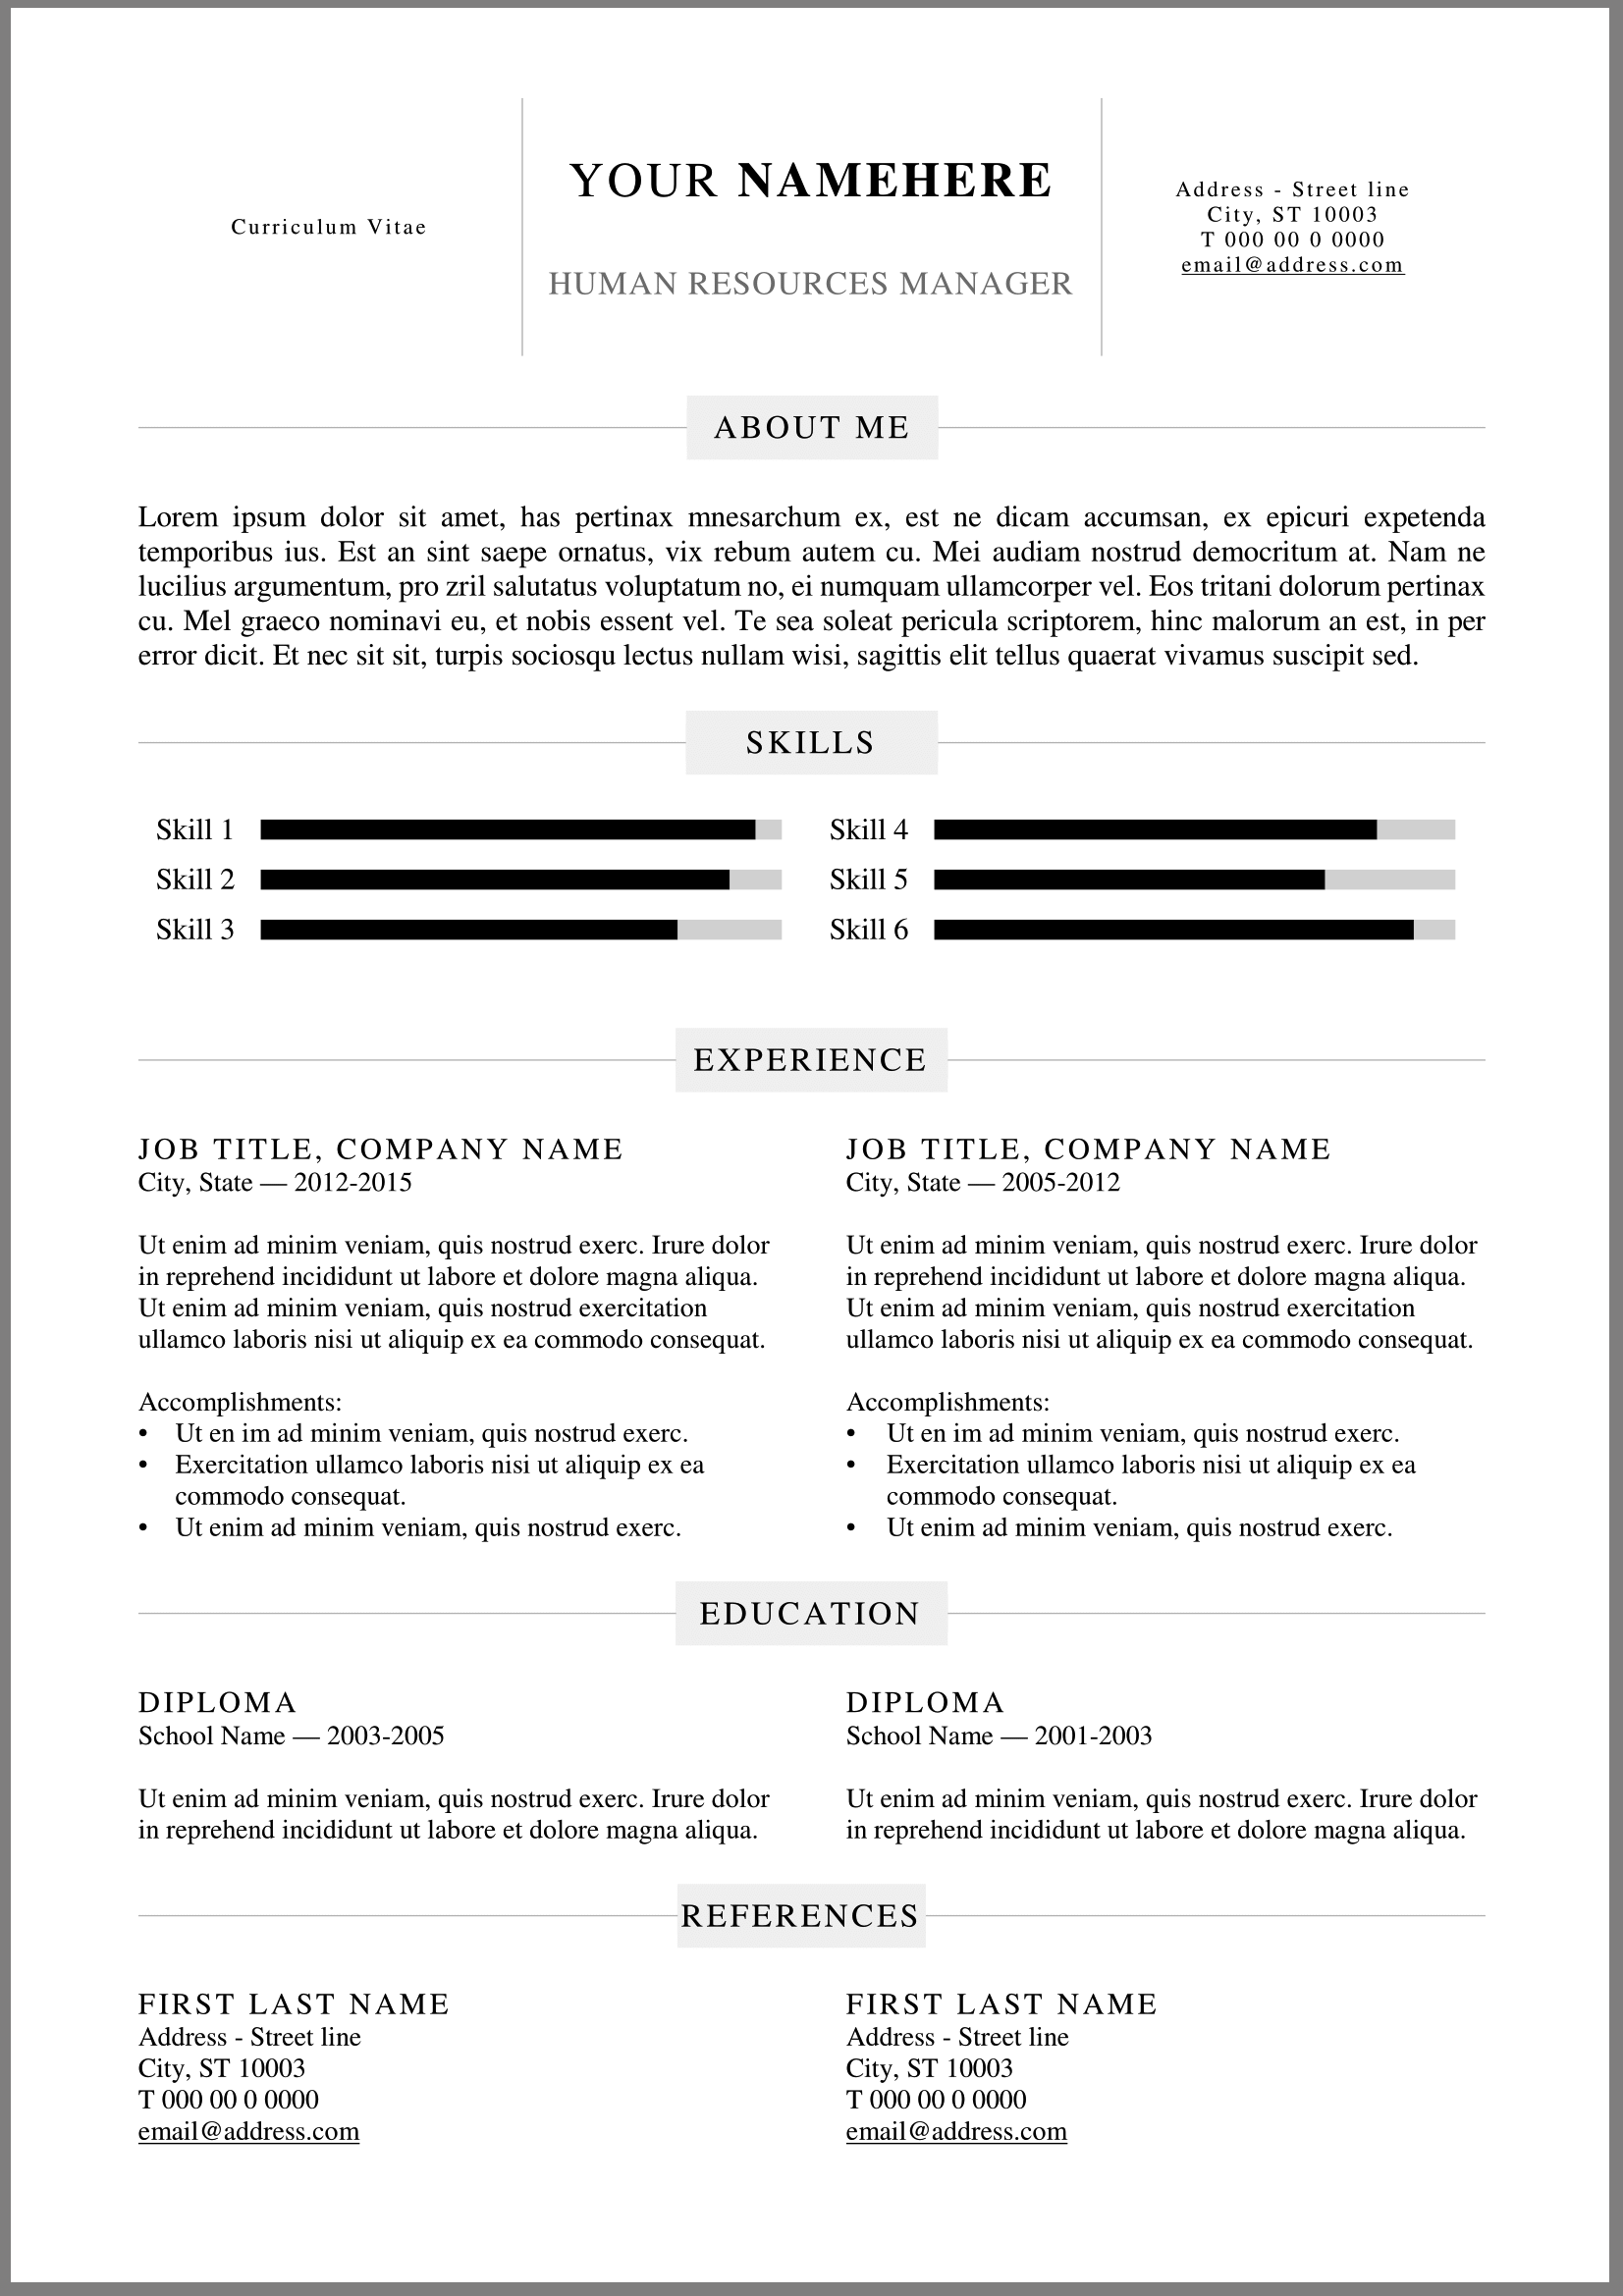 free resume word templates to impress your employer responsive - I Need A Resume Template